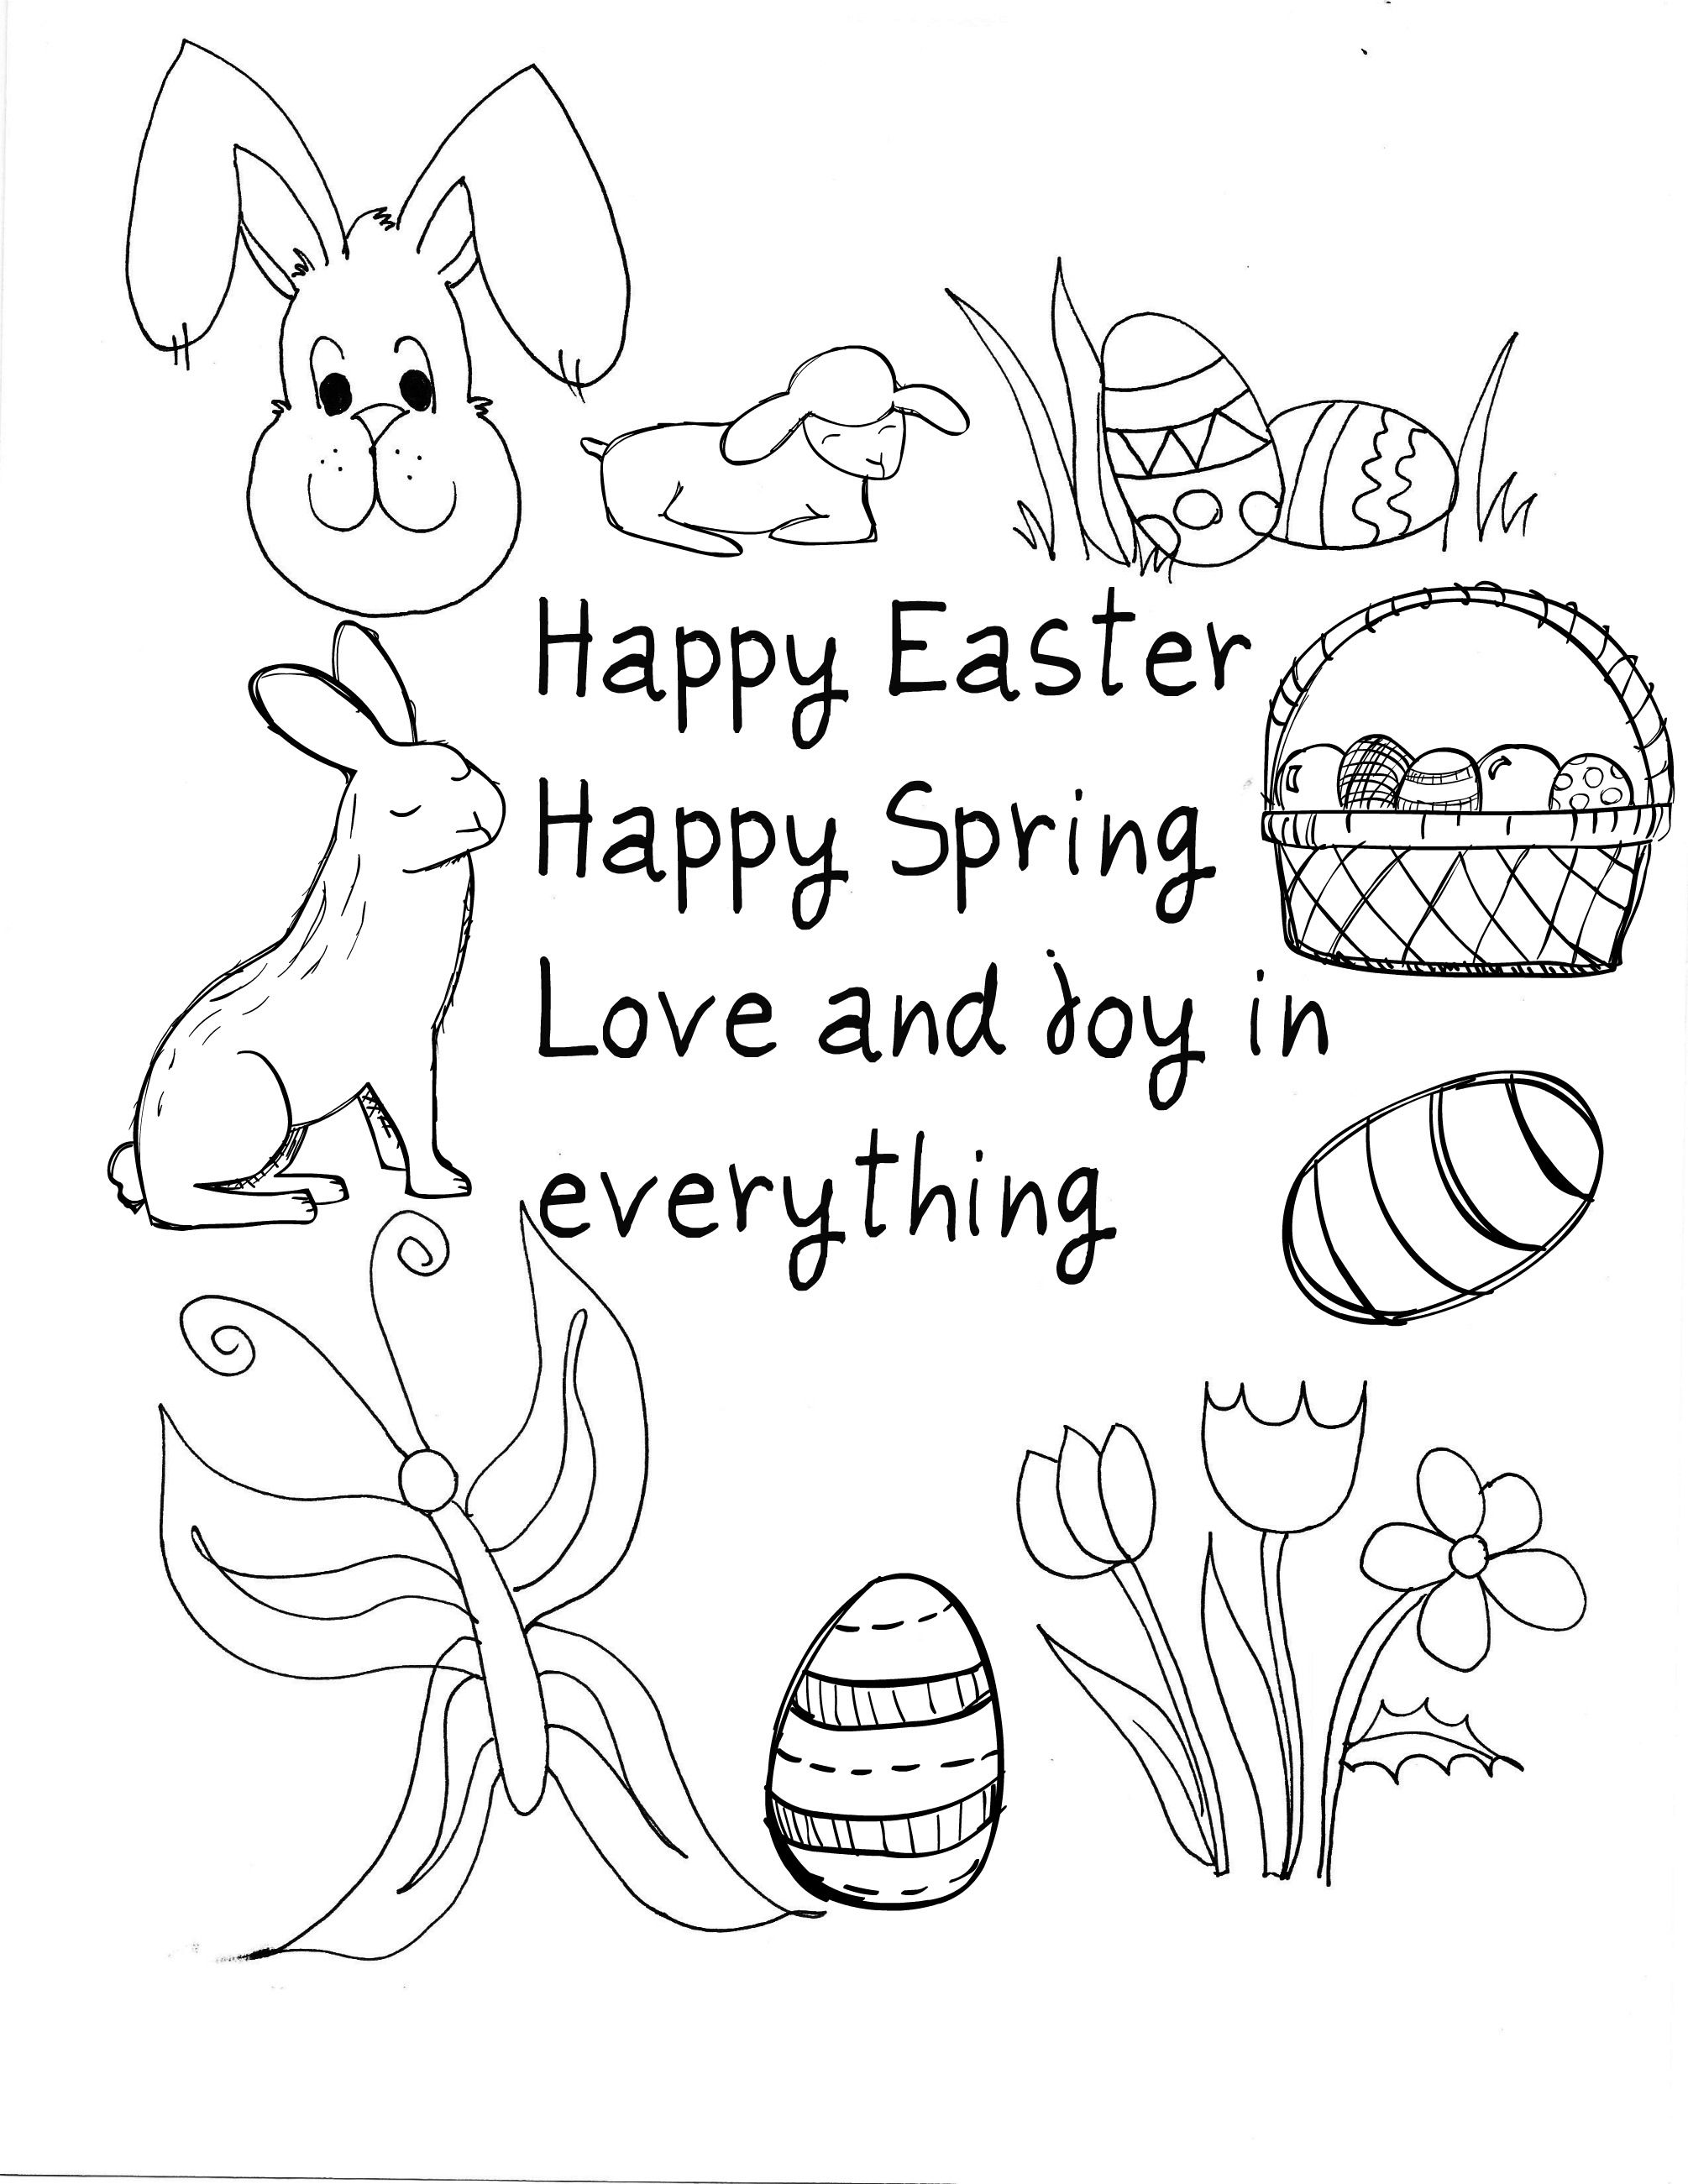 Free Easter And Spring Coloring Pages Archives Ketaros